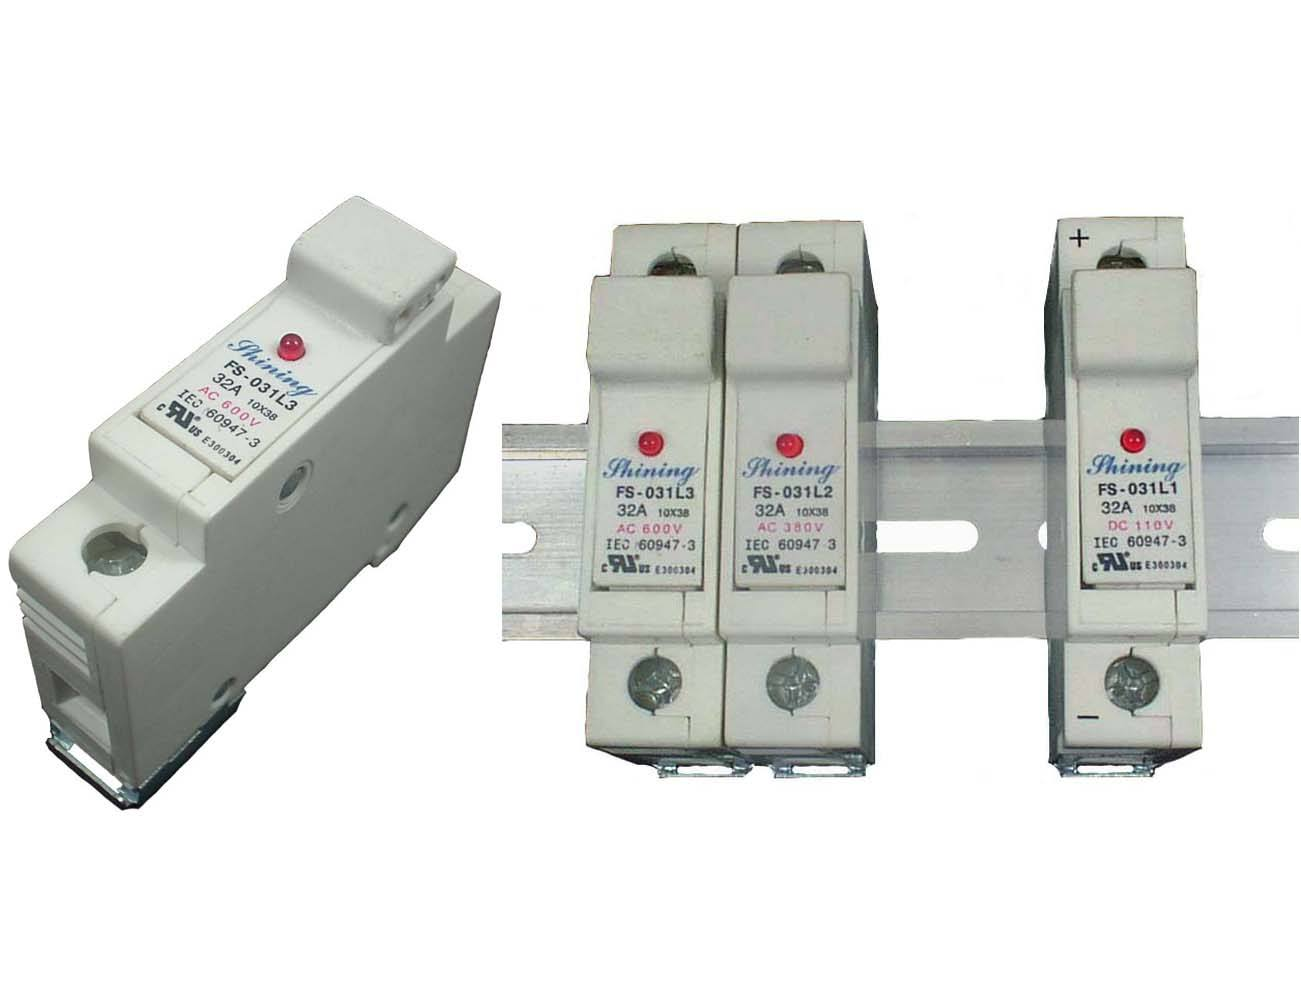 taiwan fs 032l3 600v 32a 1 way din rail mounted cylindrical fuse